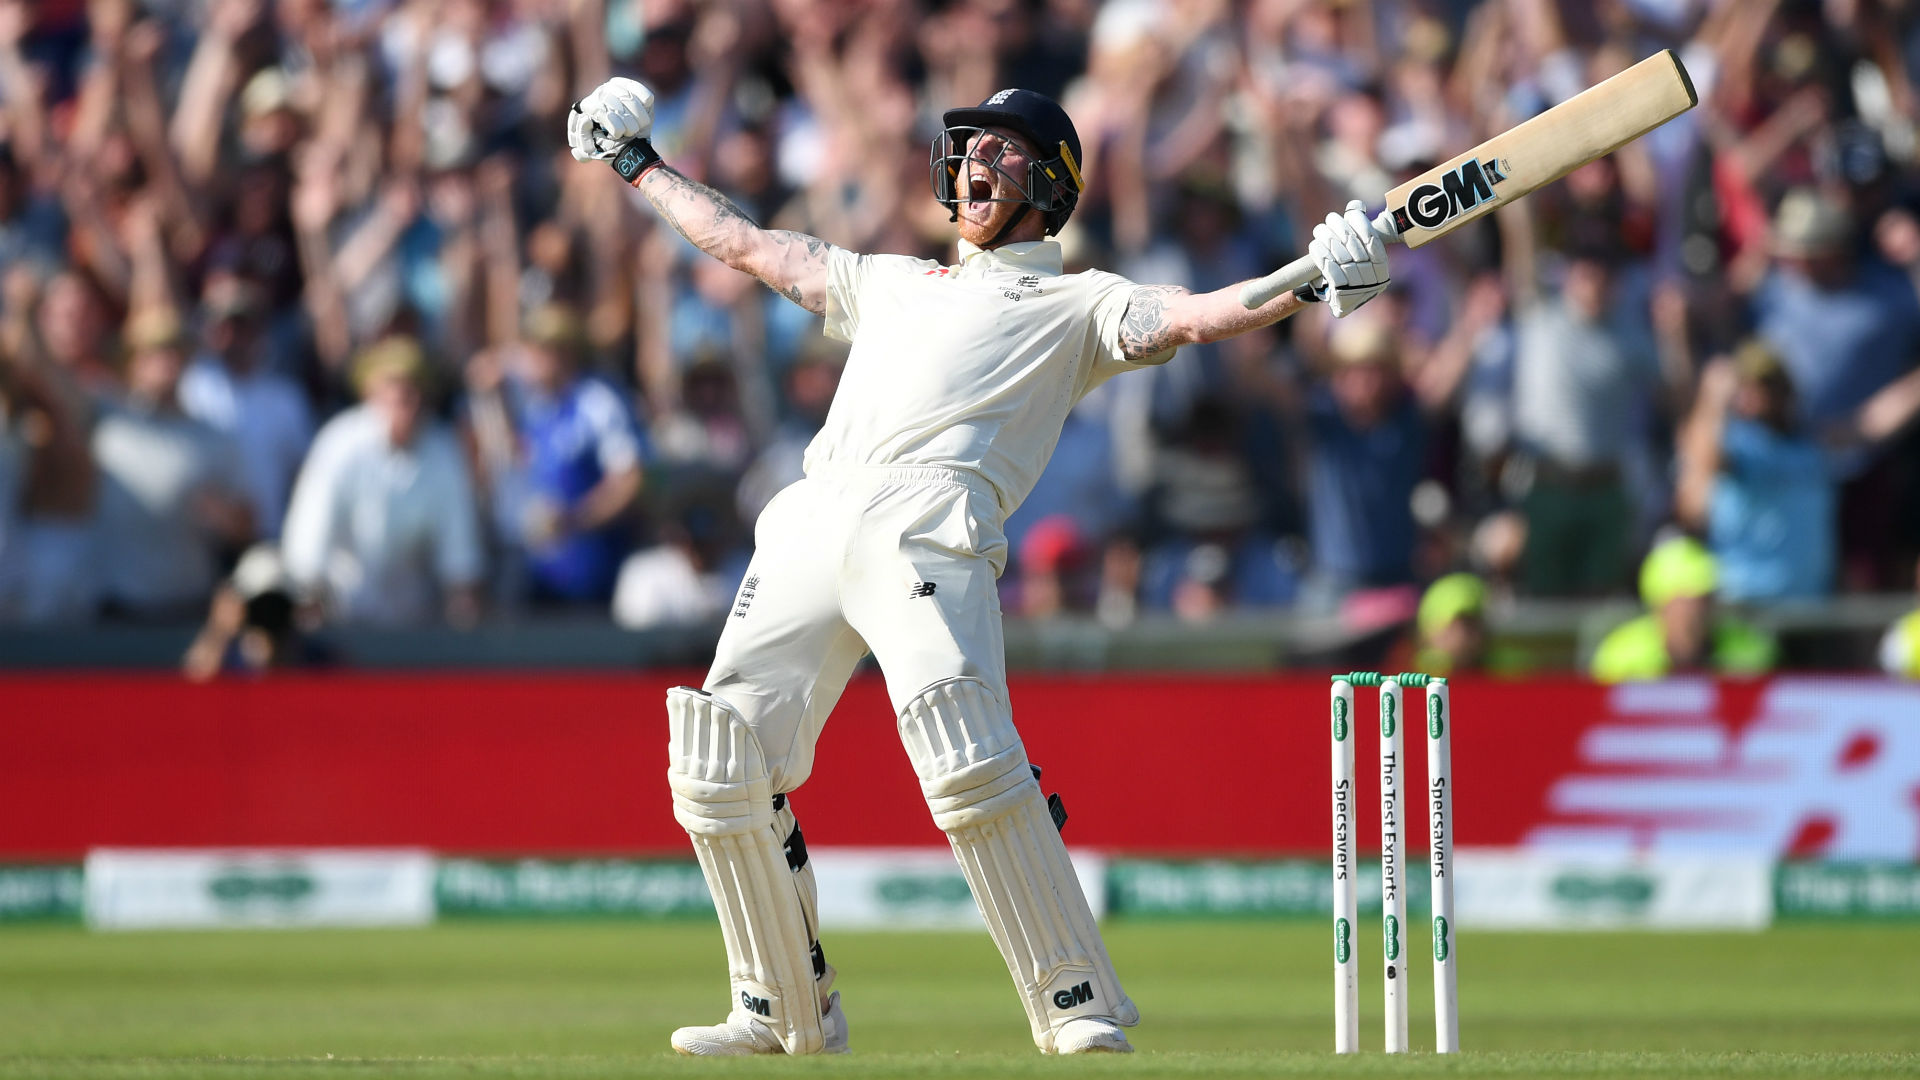 Ashes 2019: There were quarter pounders everywhere! Stokes reveals McDonald's celebration